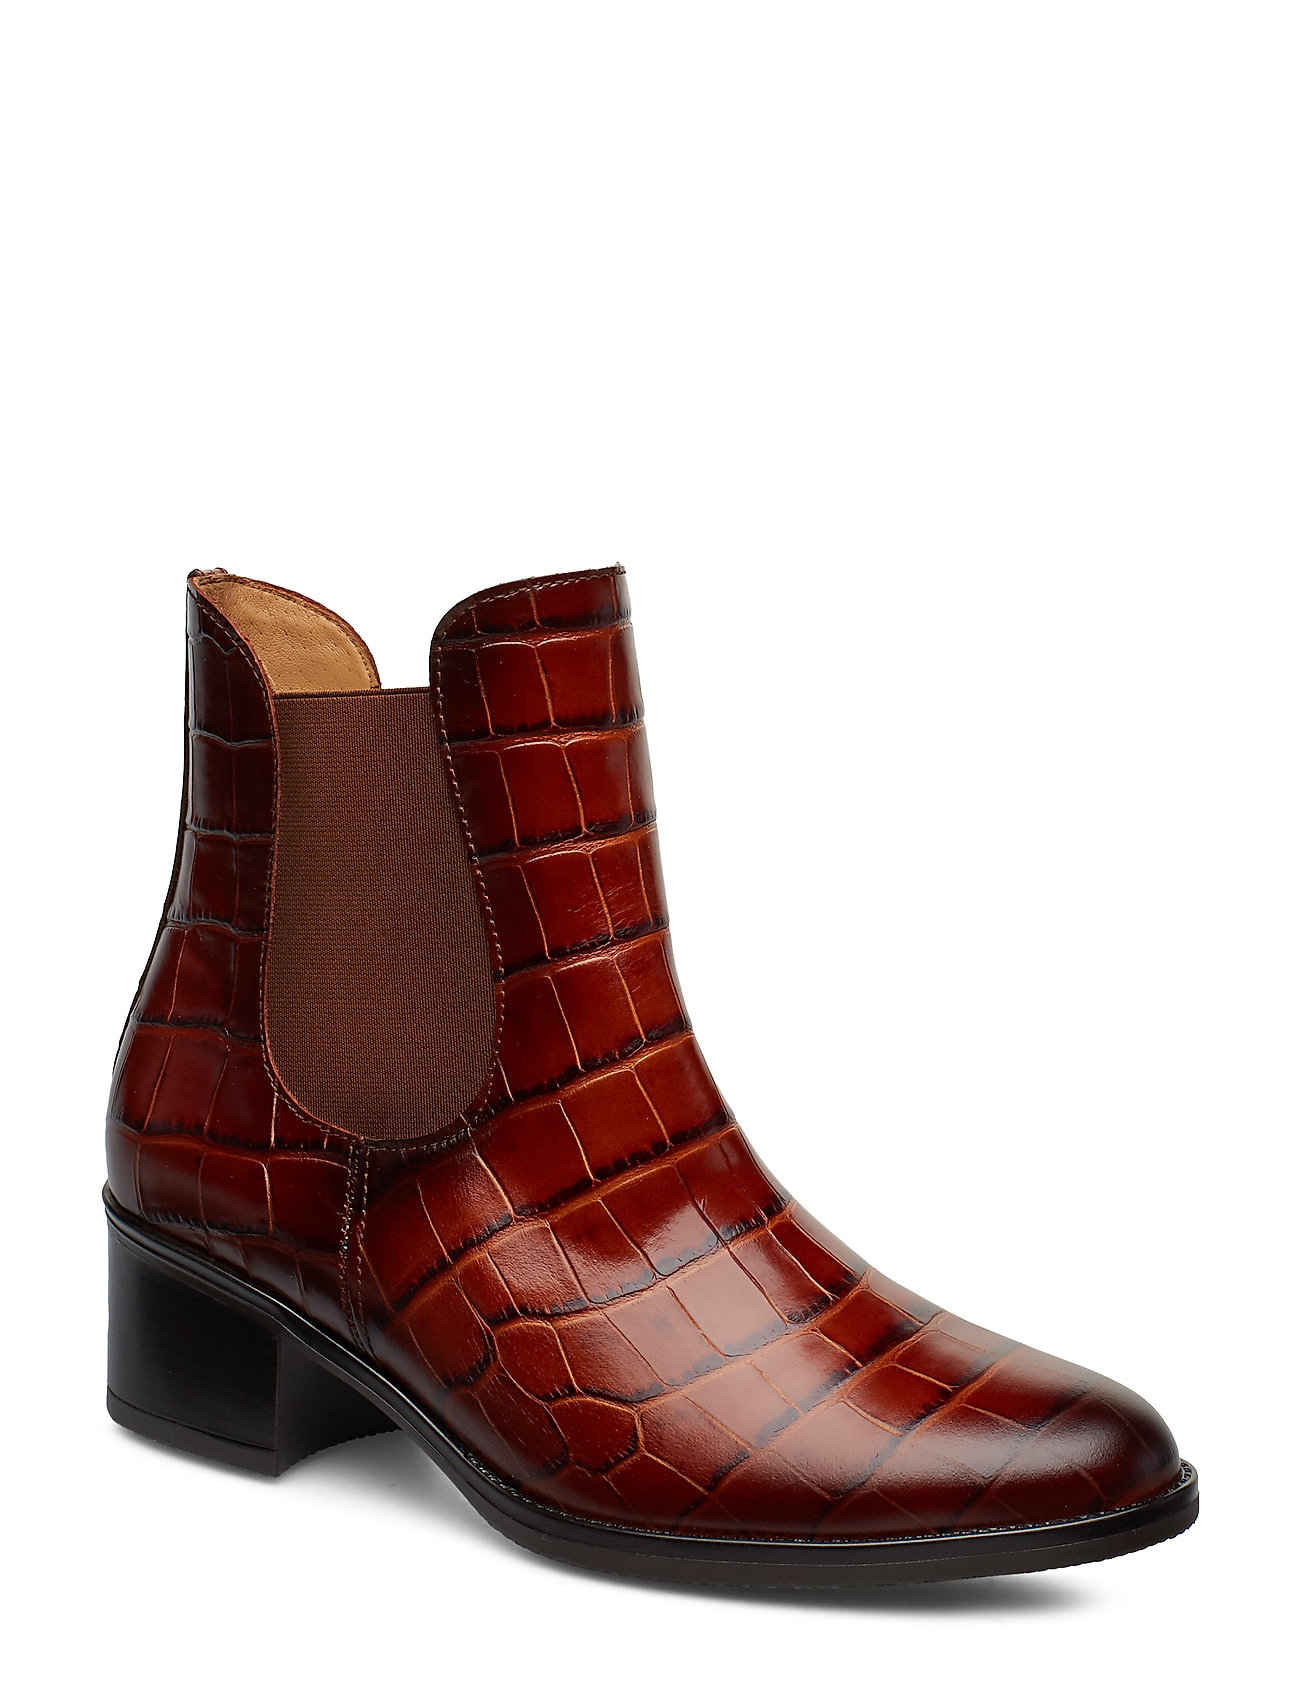 Image of Ankle Boots Shoes Boots Ankle Boots Ankle Boots With Heel Brun Gabor (3201657683)